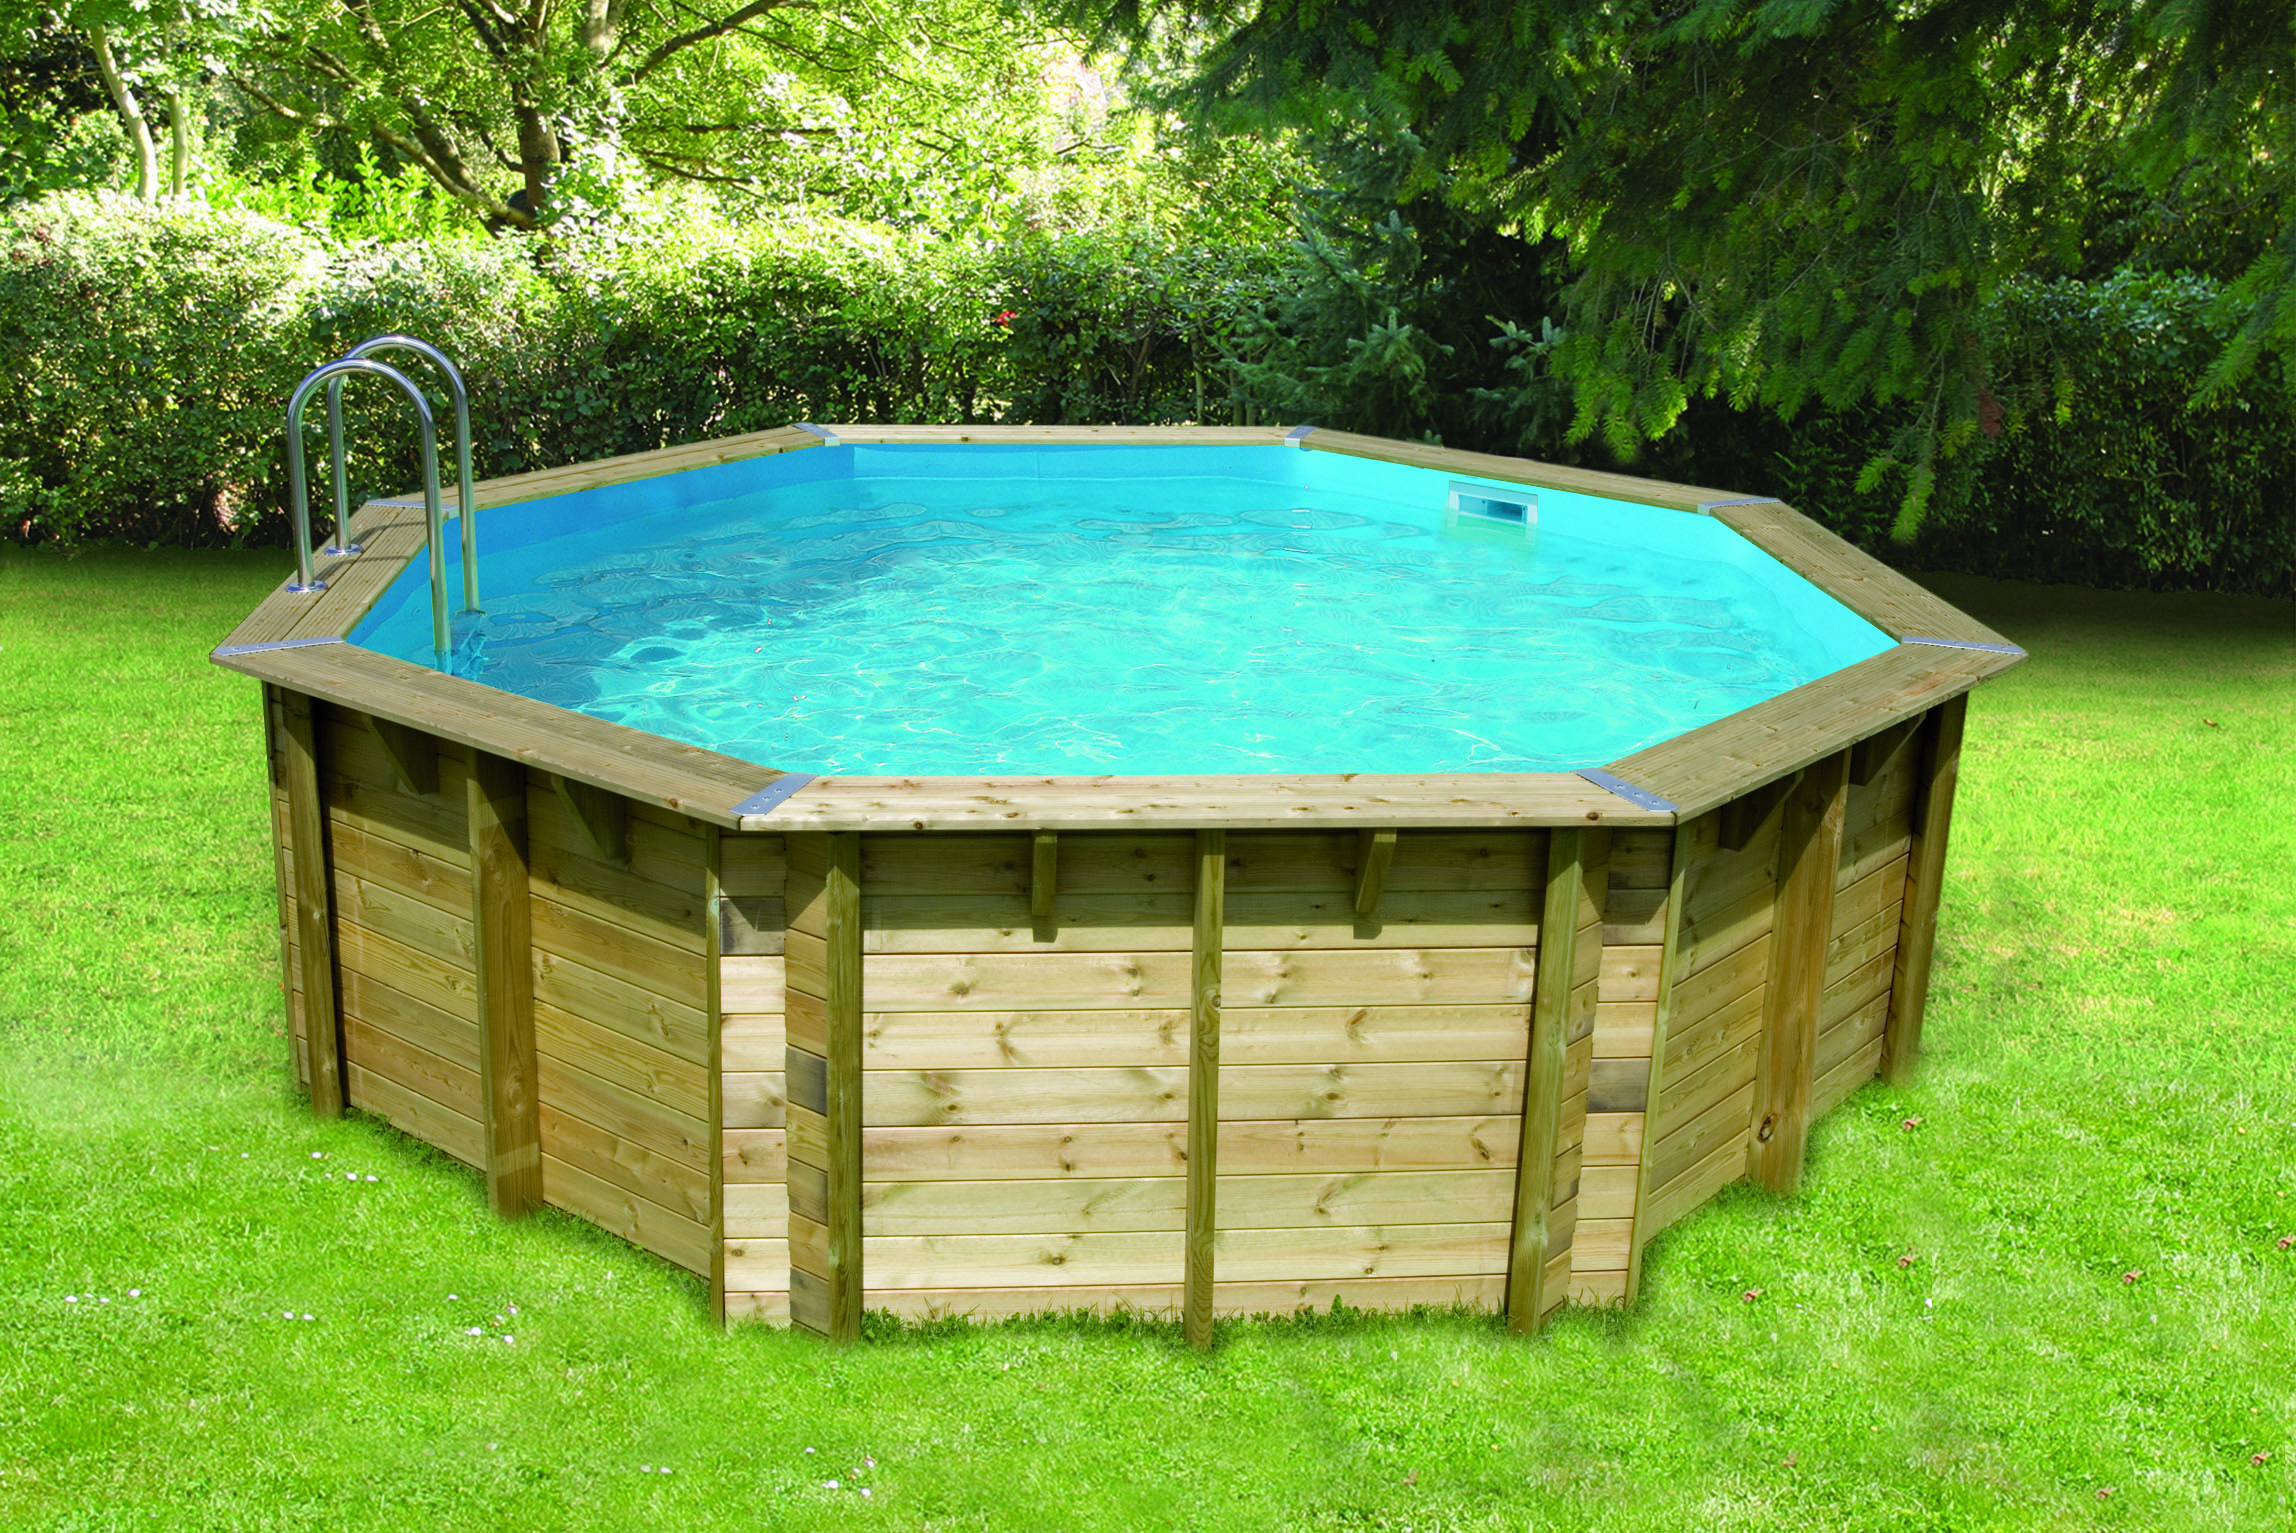 Nortland bois ubbink ocea ronde en kit 580x130 cm for Kit piscine en bois